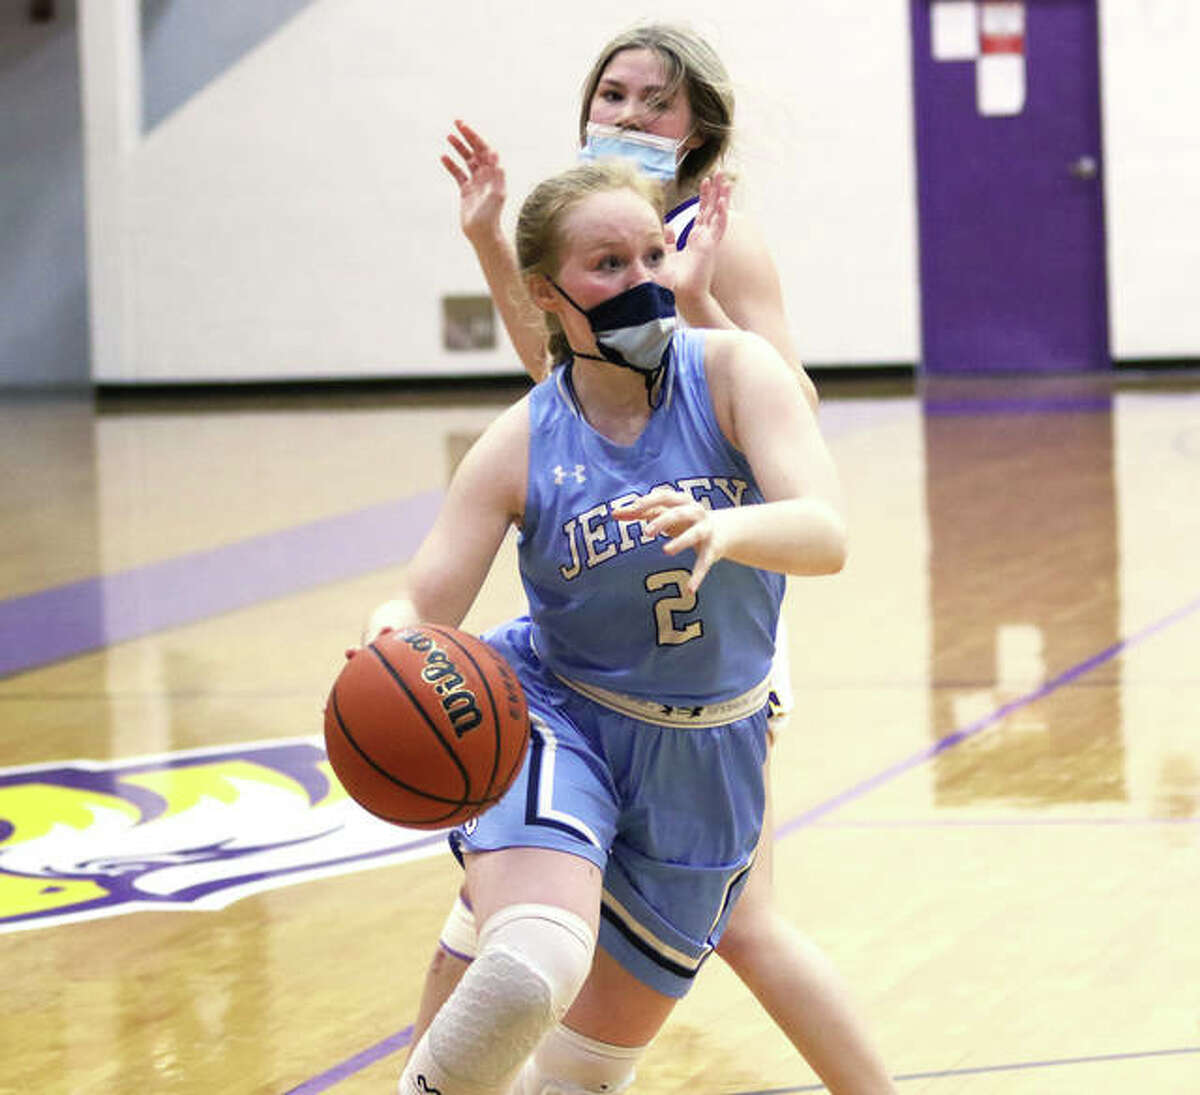 Jersey's Sally Hudson (2) drives past CM's Maura Niemeier in a Feb. 22 game at Bethalto. Hudson, a senior, scored 11 points in her final game Saturday.